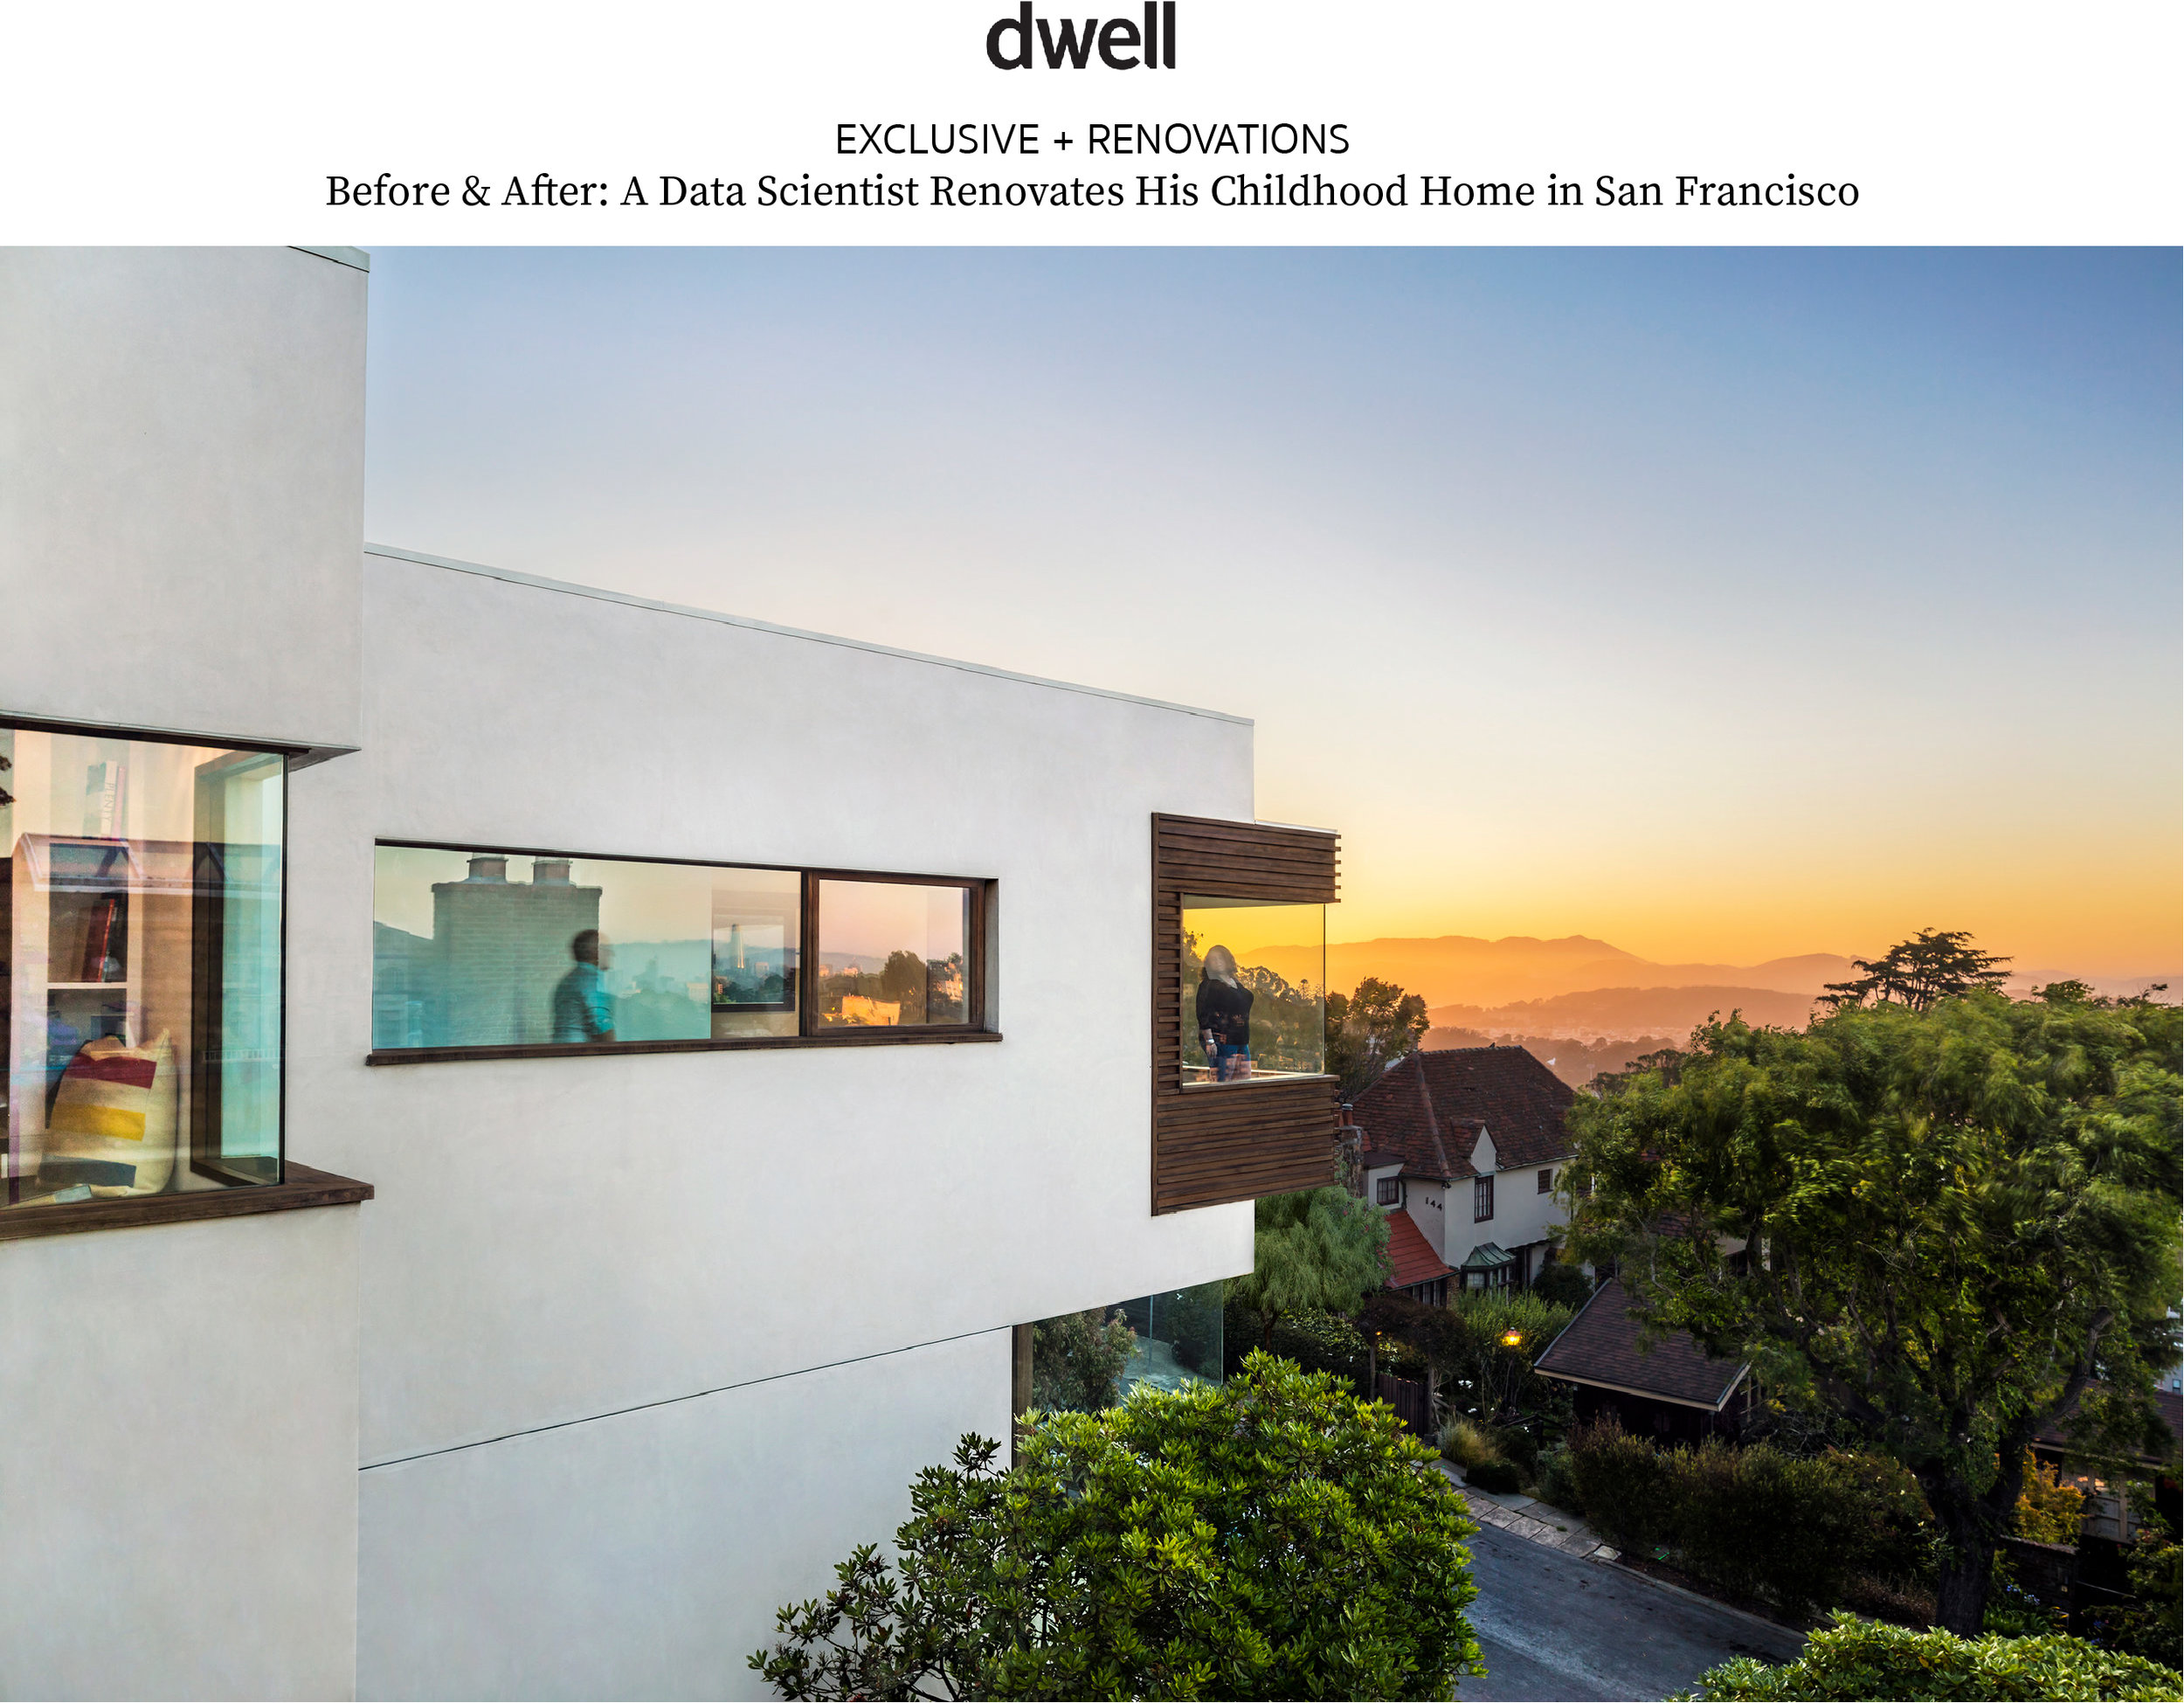 """""""Helping to balance nostalgia and aesthetics, architect Jennifer Weiss…retained the house's original footprint while raising ceilings, expanding windows, carving out bedrooms, and catapulting the facade into the current century."""" - Deborah Bishop for Dwell Magazine."""